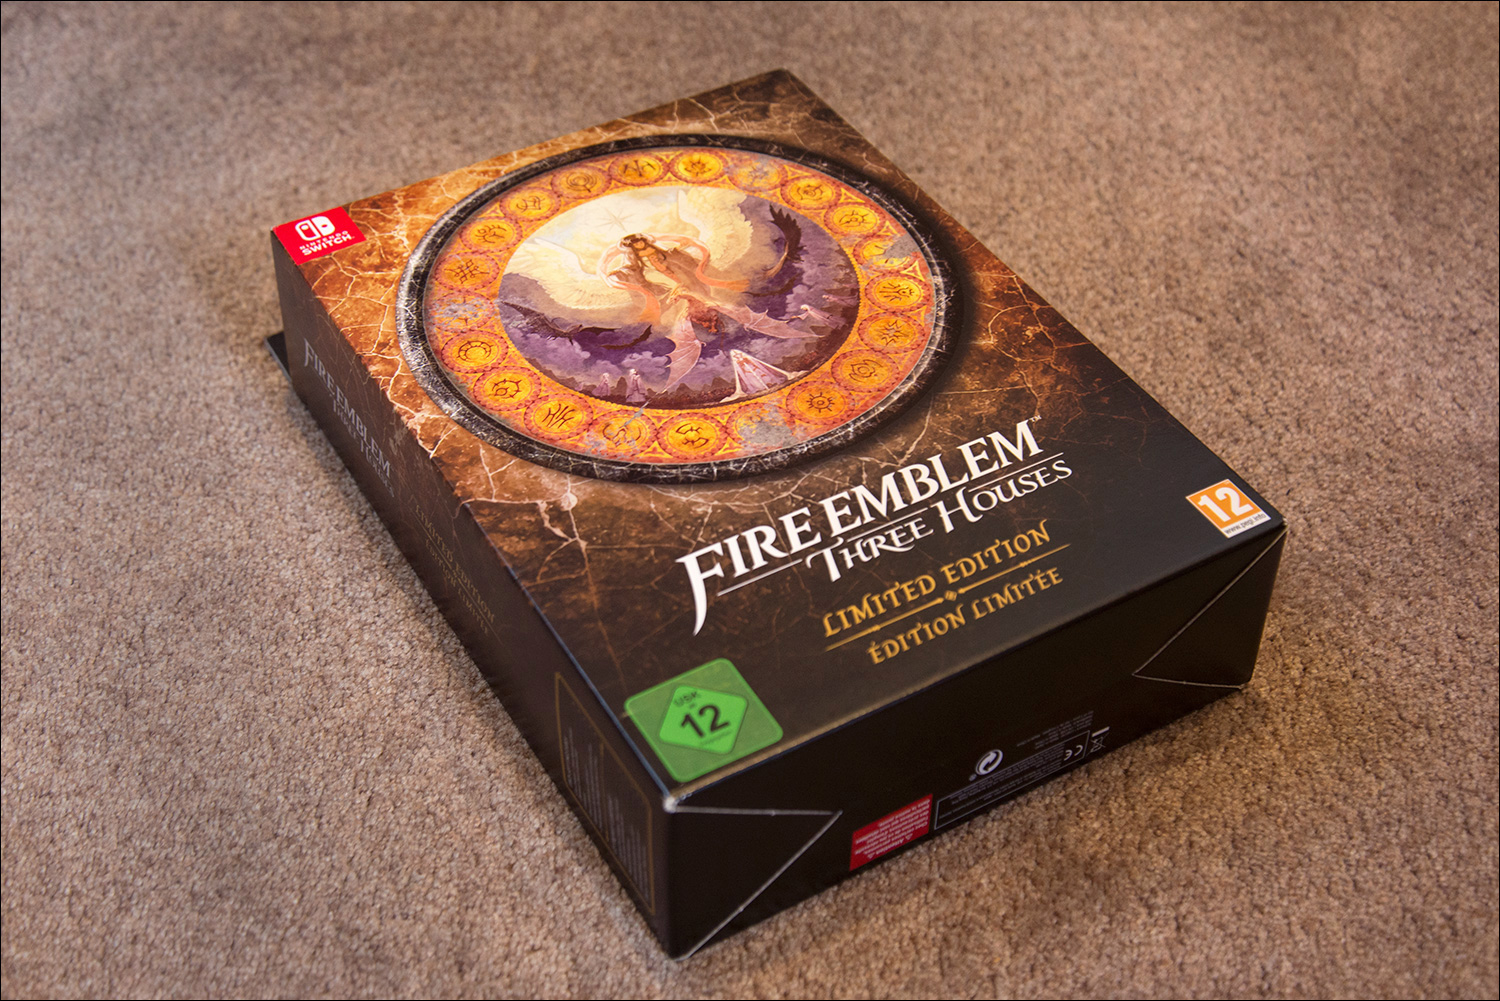 Fire-Emblem-Three-Houses-Limited-Edition